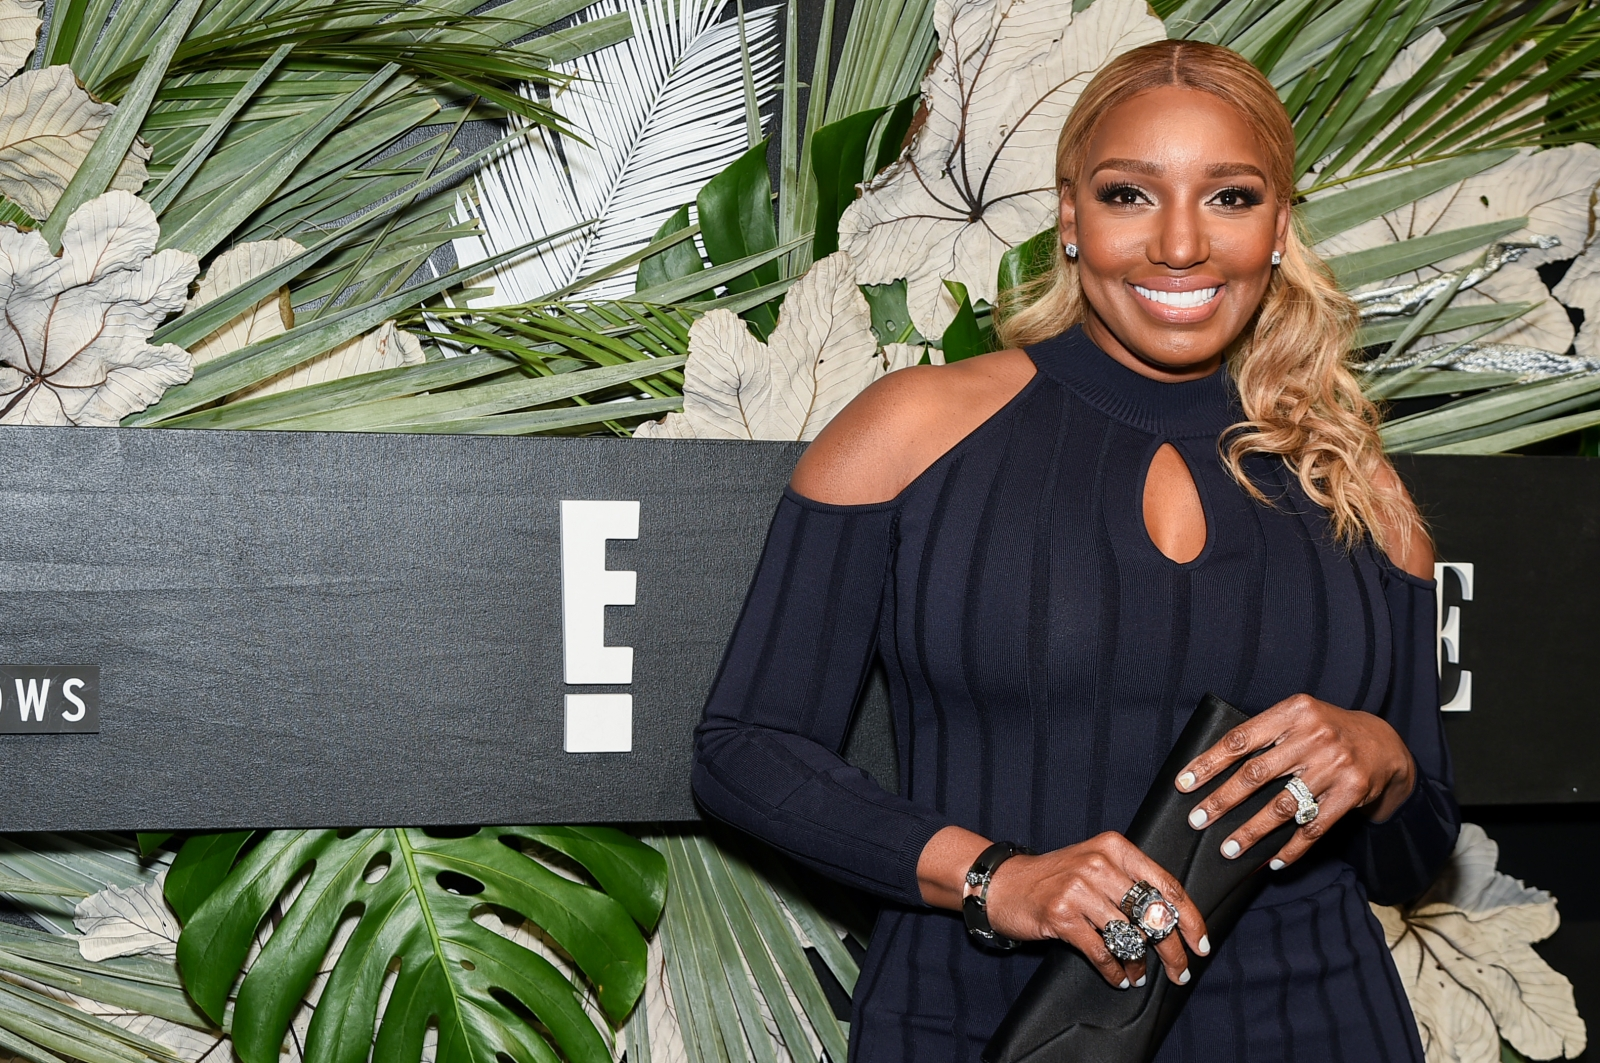 NeNe Leakes salary revealed